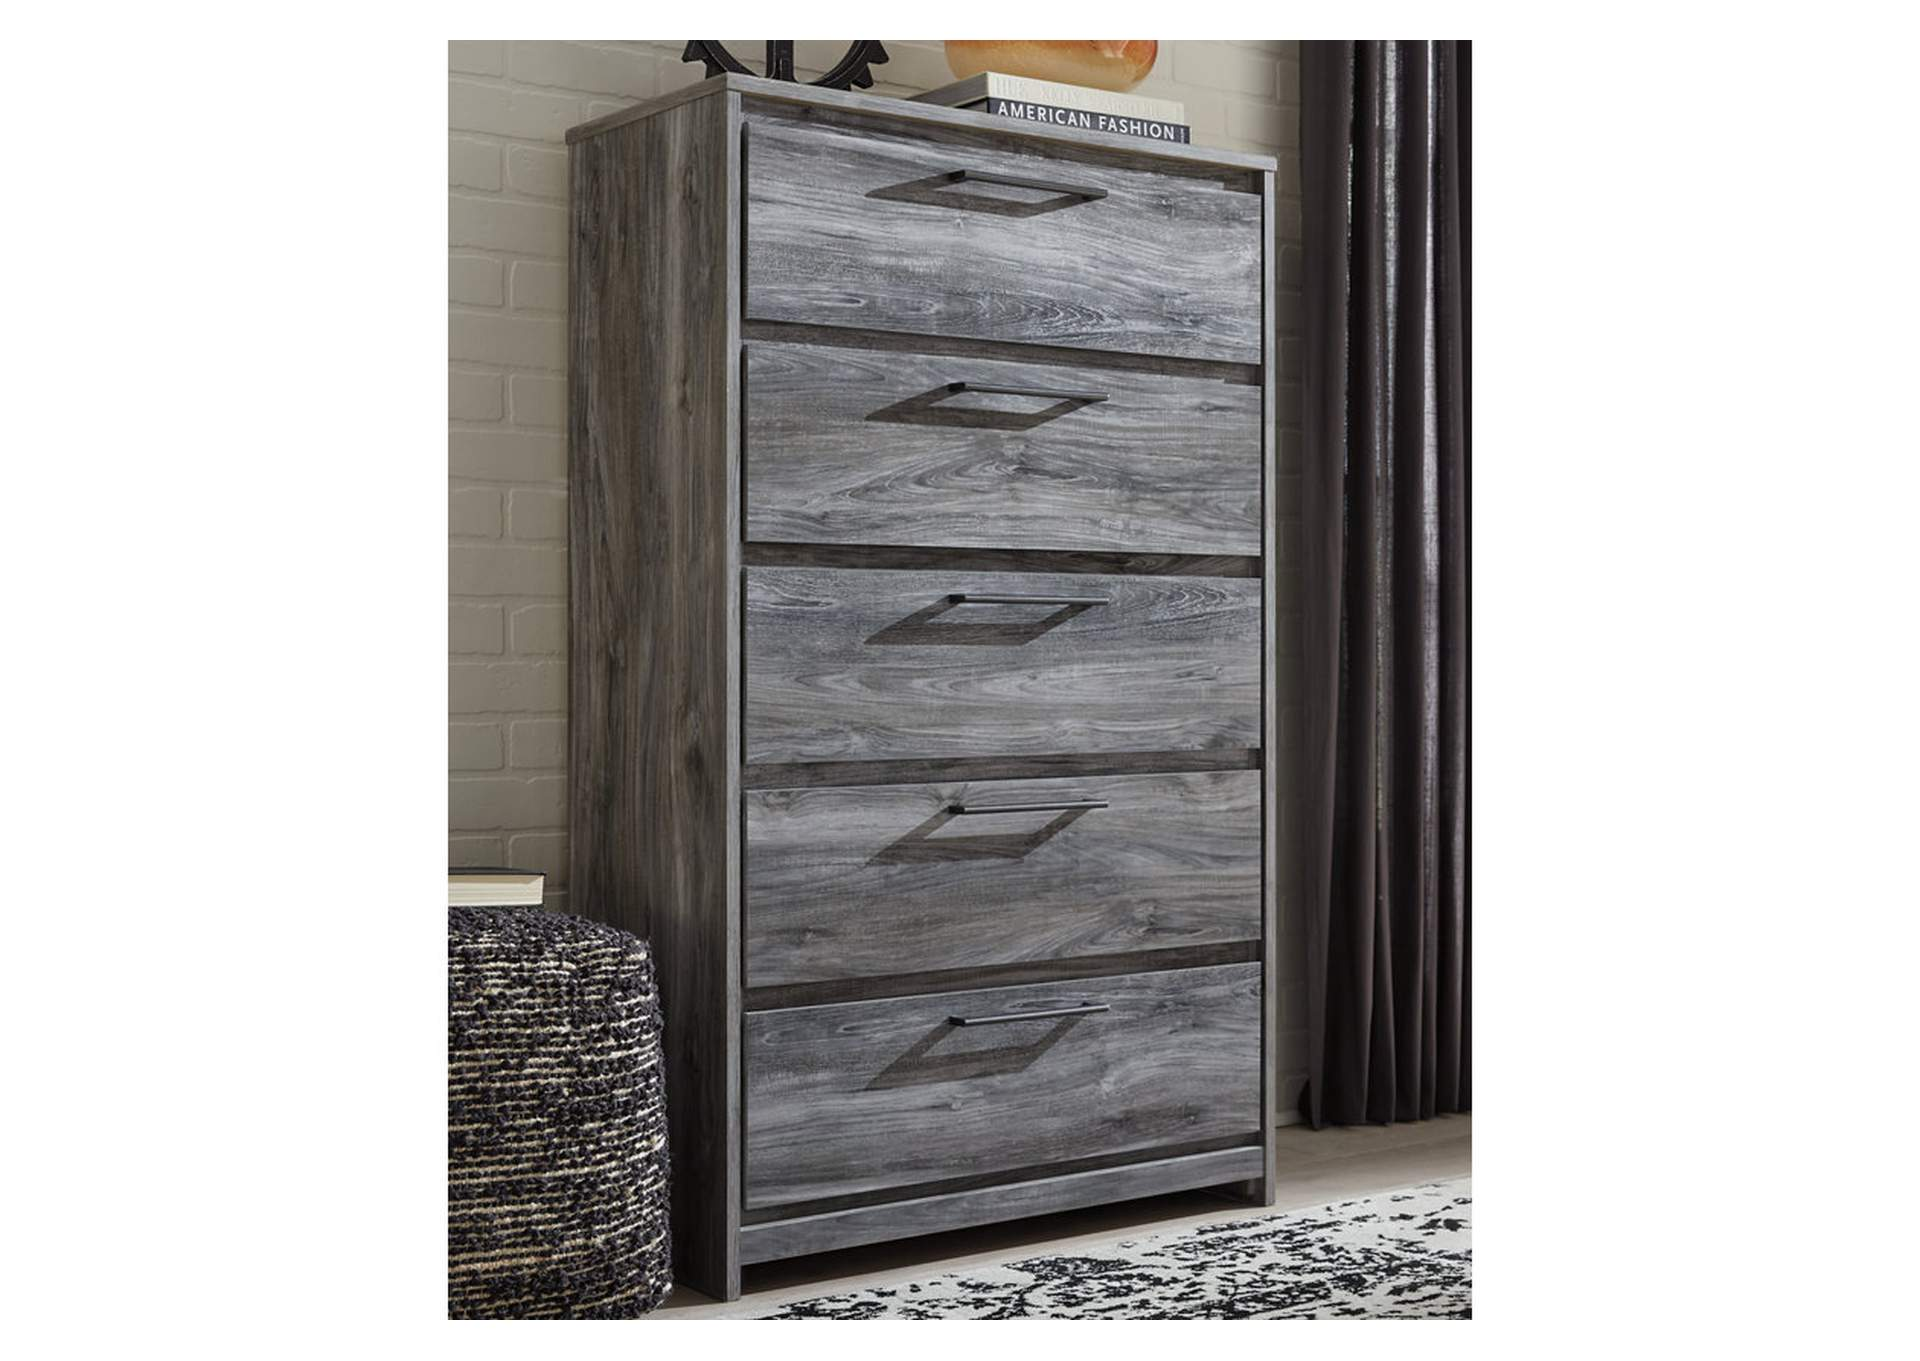 Baystorm Gray Five Drawer Chest,Signature Design By Ashley